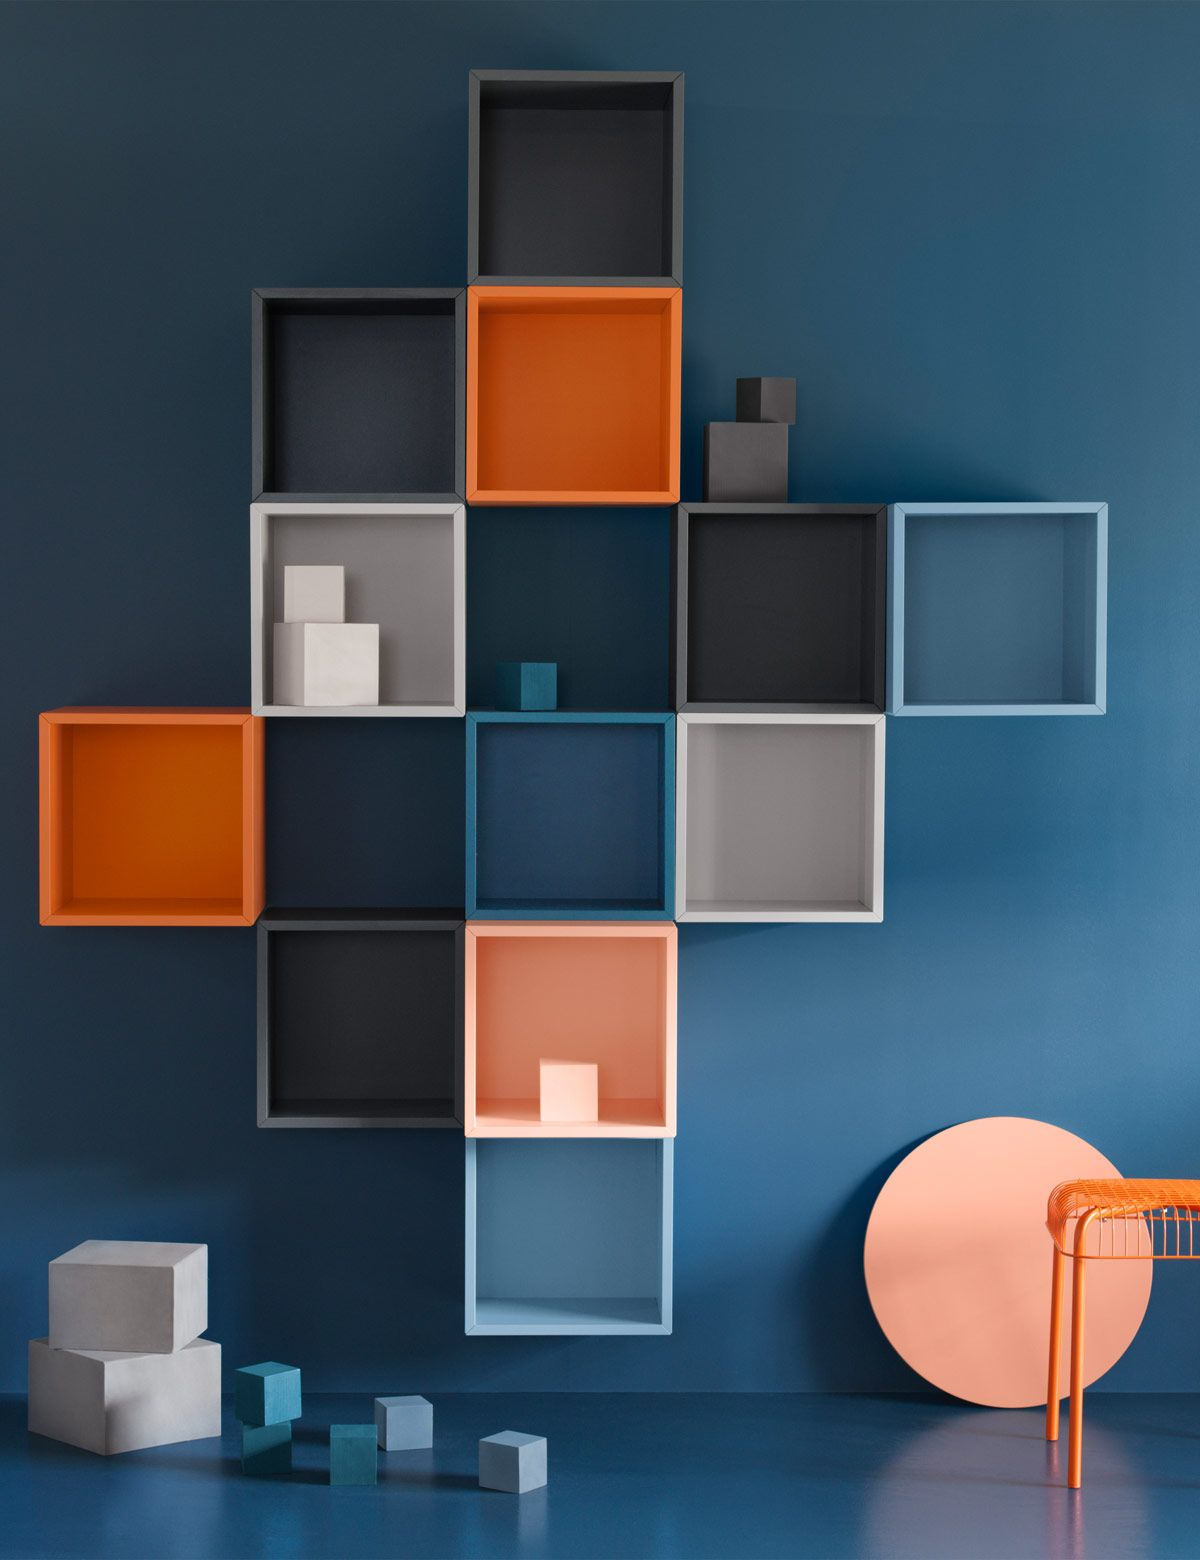 eine blaue wand u a mit eket schrankkombination f r wandmontage bunt ibiza appartment by. Black Bedroom Furniture Sets. Home Design Ideas